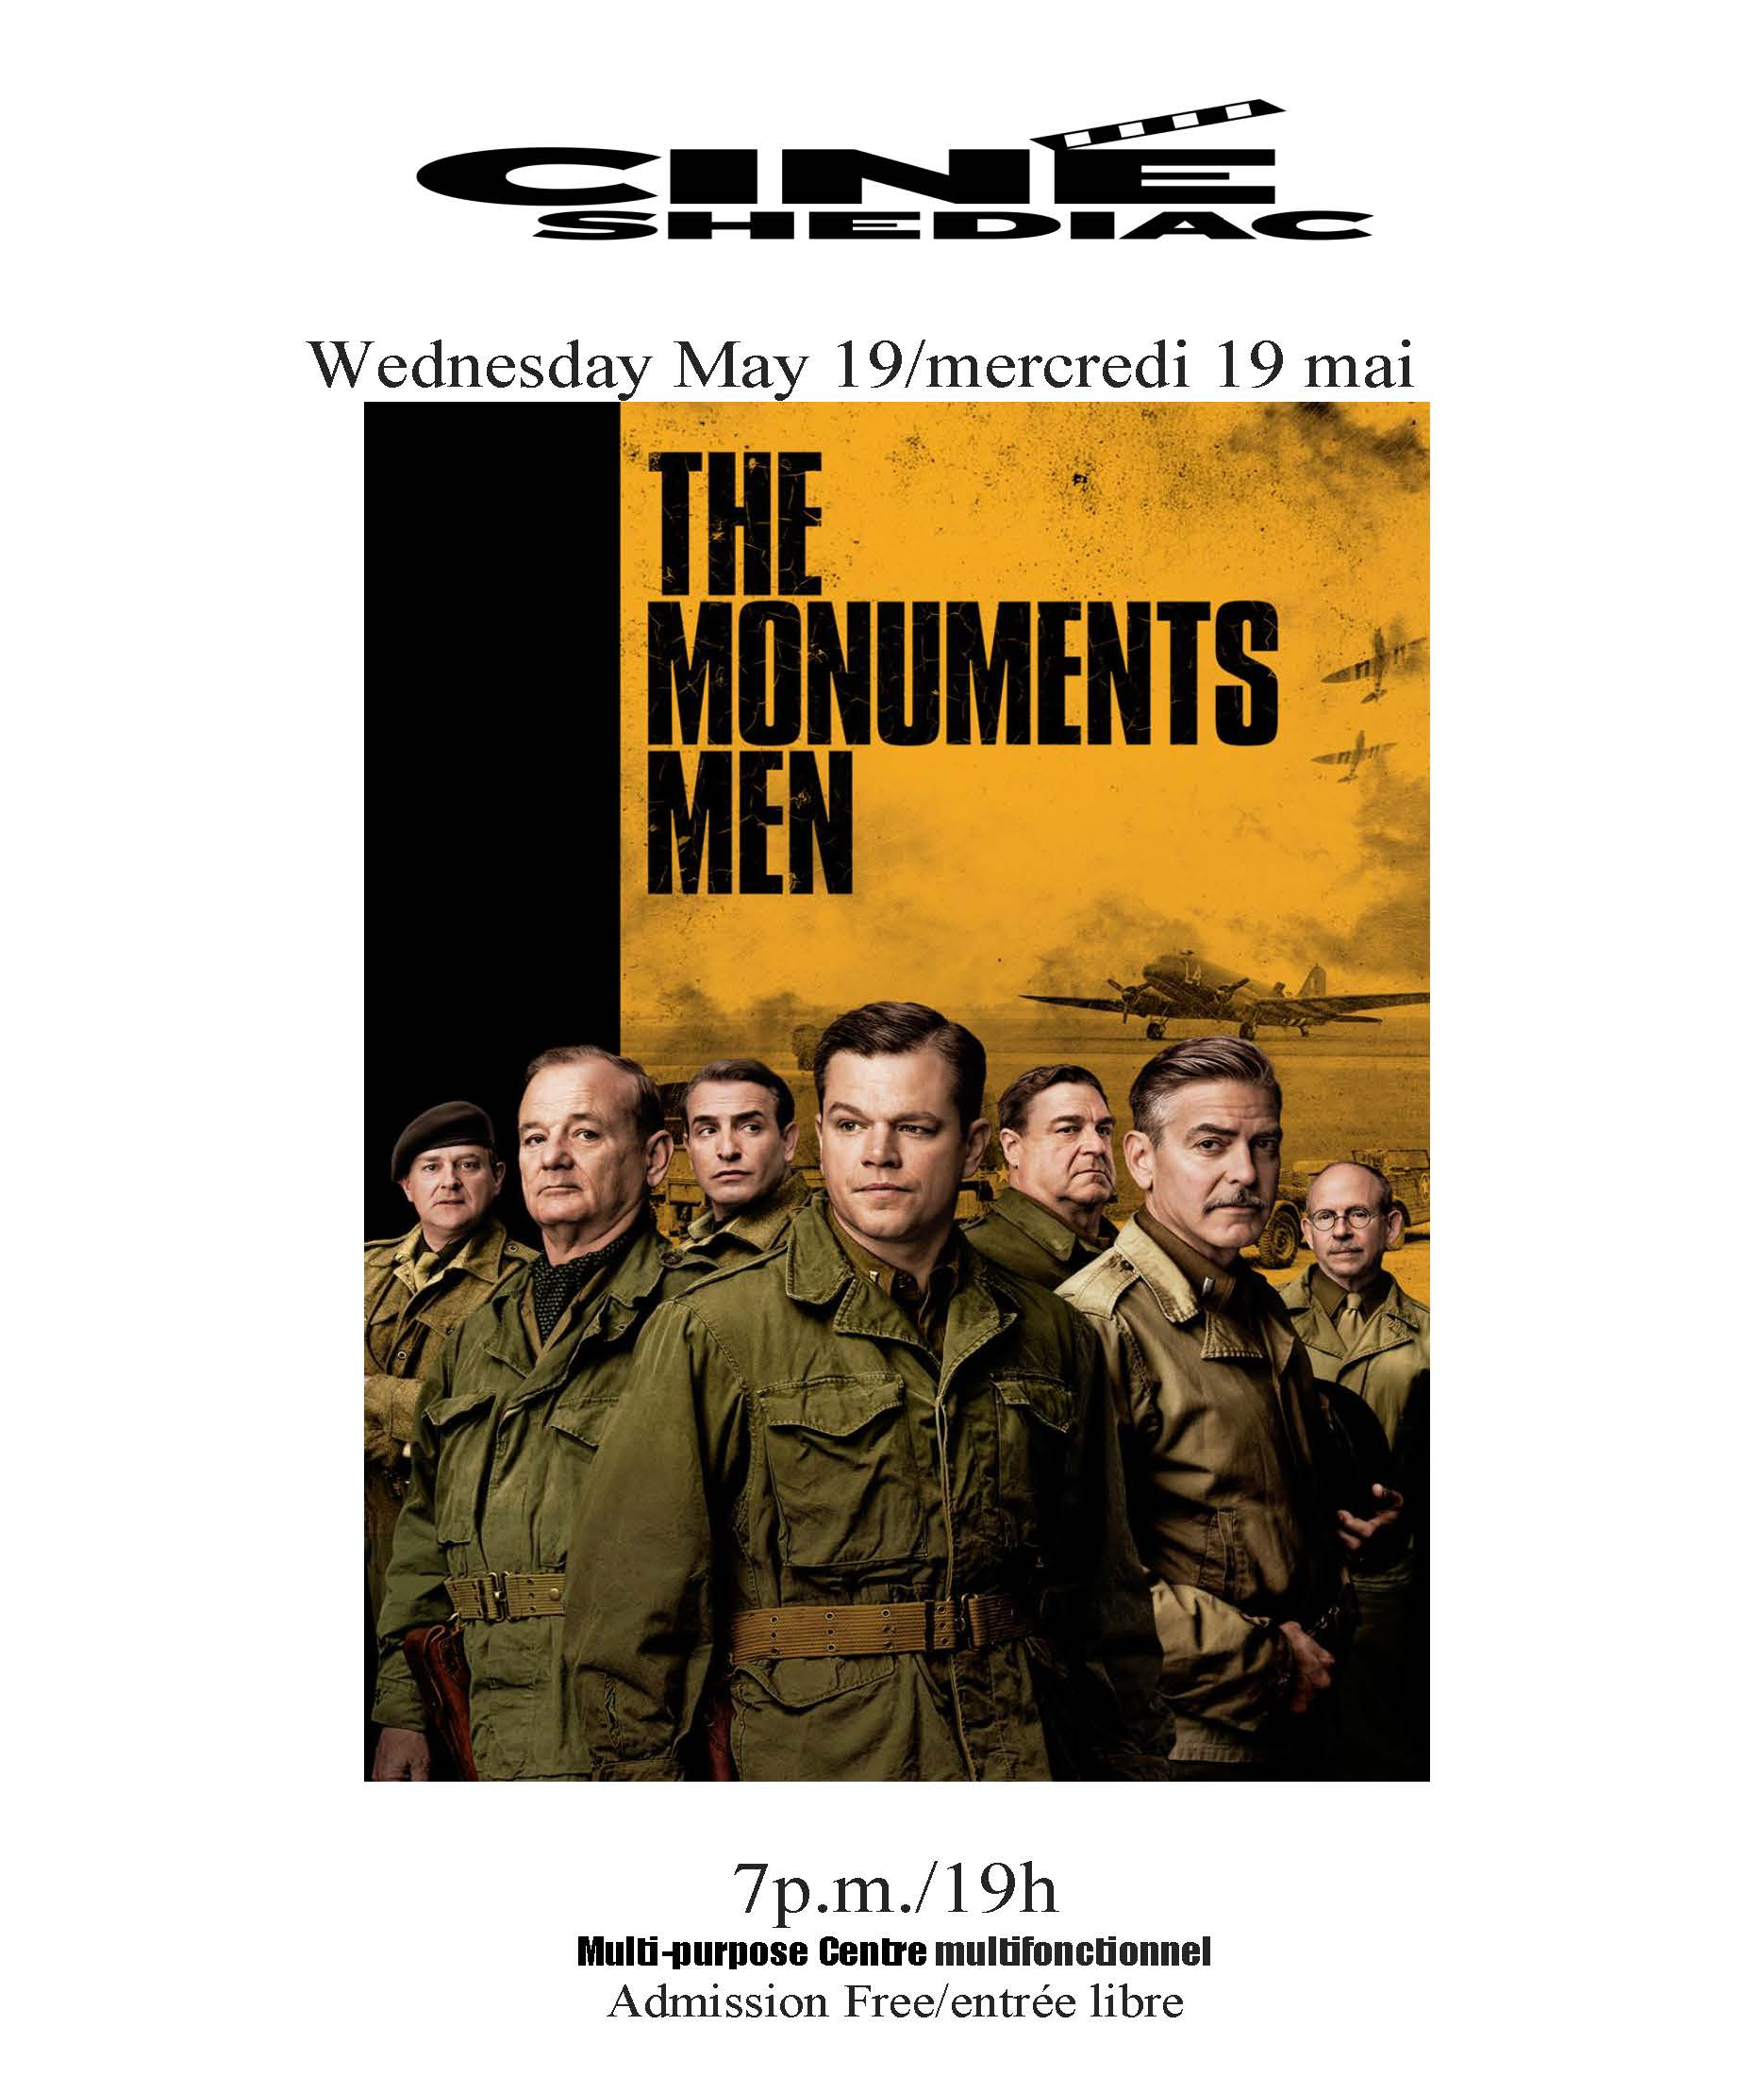 Th Monuments Men 19 mai